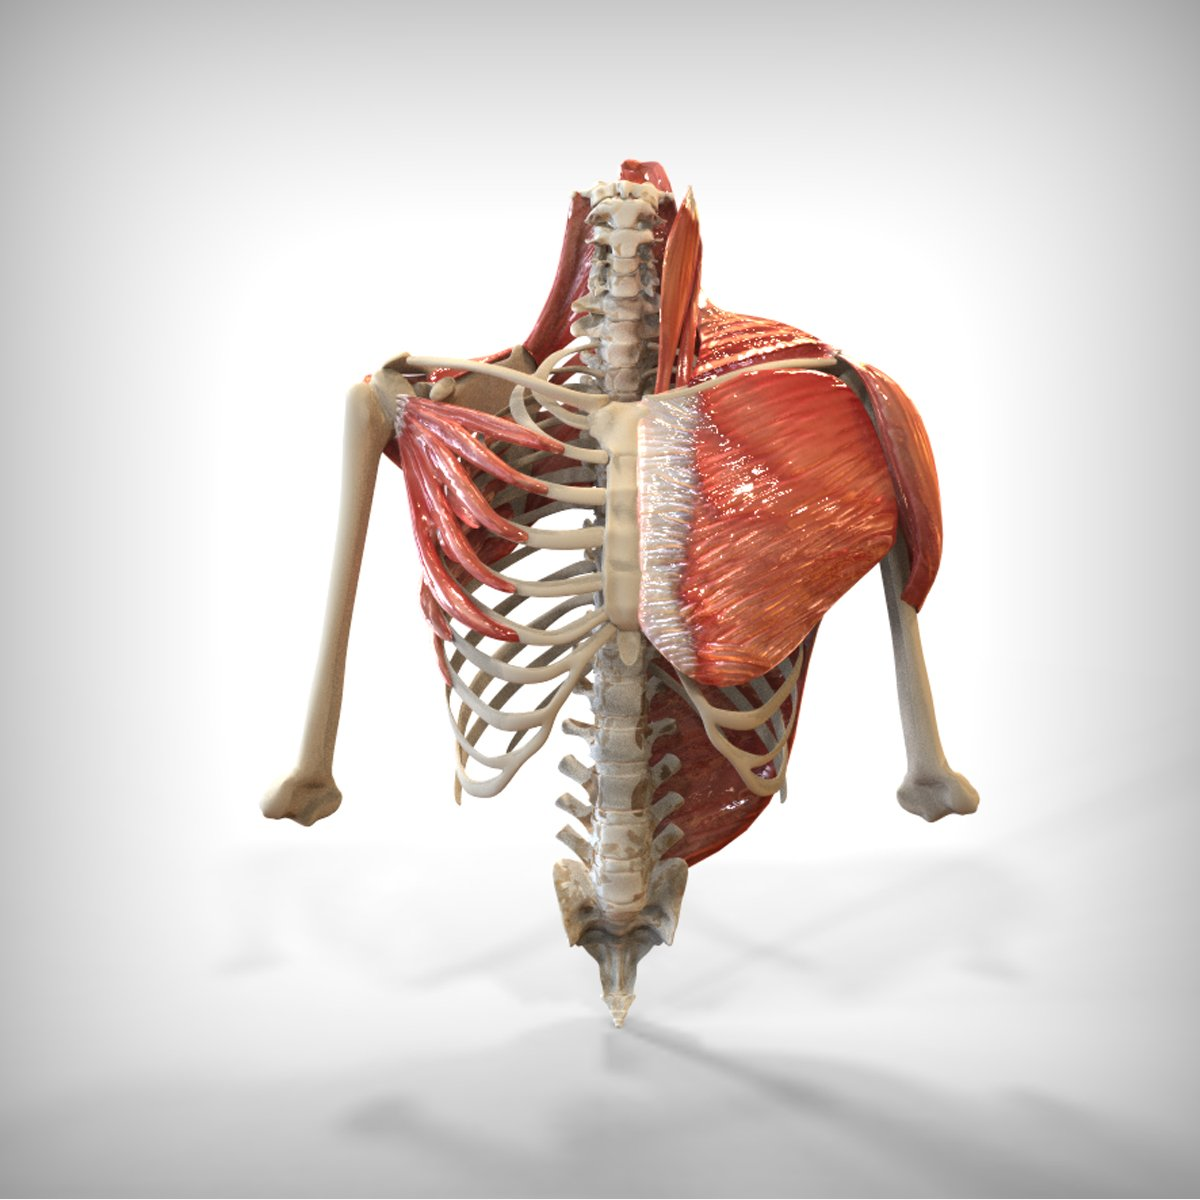 Human Upper skeletal and Connecting Muscles 3D-Modell in Anatomie ...